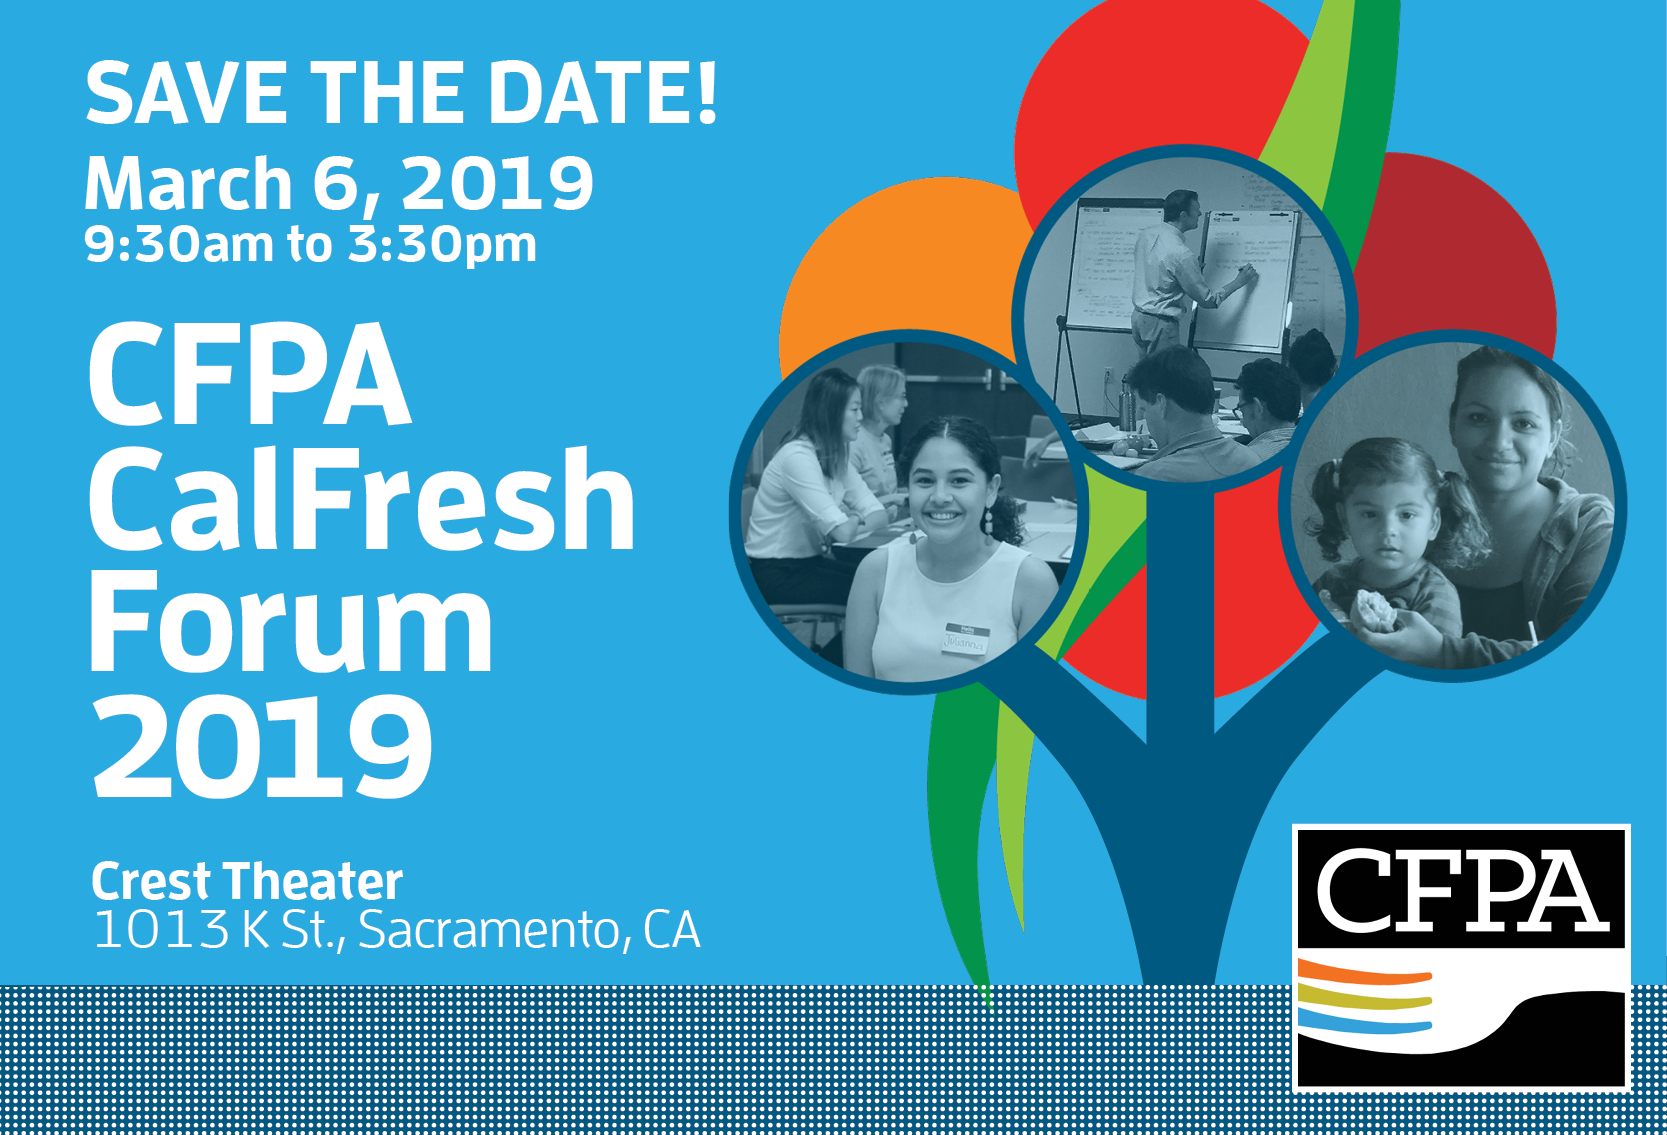 2019 Forum Save the Date